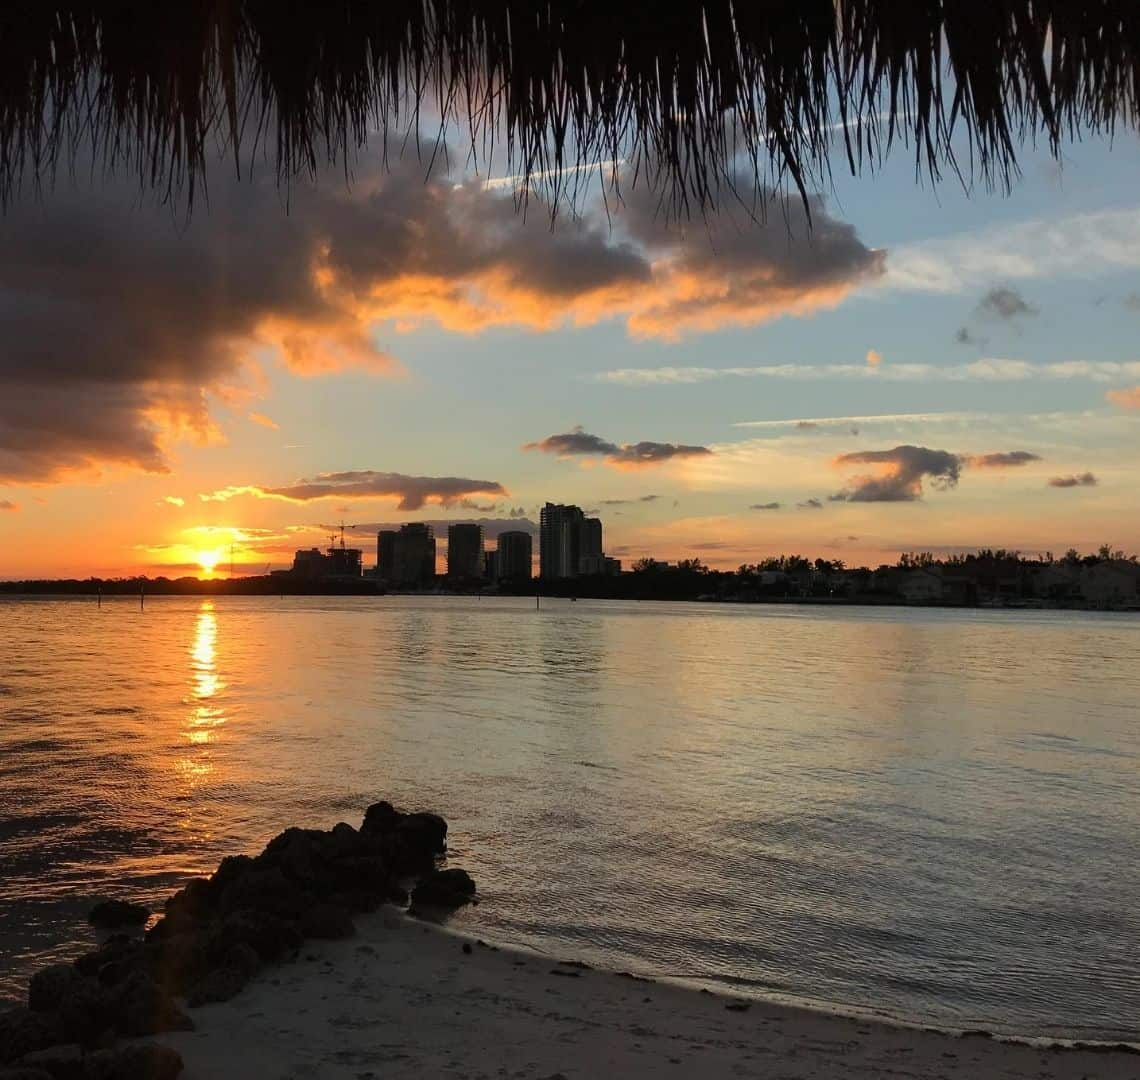 The top of the image is fringed with the silhouette of palm leaves from an over hanging tree. On the horizon is the silhouette of high rise buildings separated from the tiny stretch of sand at teh bottom of the image by a still expanse of water. The water is like liquid mercury and reflects the darkening sky and the sunset on the left of the buildings. there are a few whiny shadowy clouds above the horizon and some thicker ones to the left of the image.